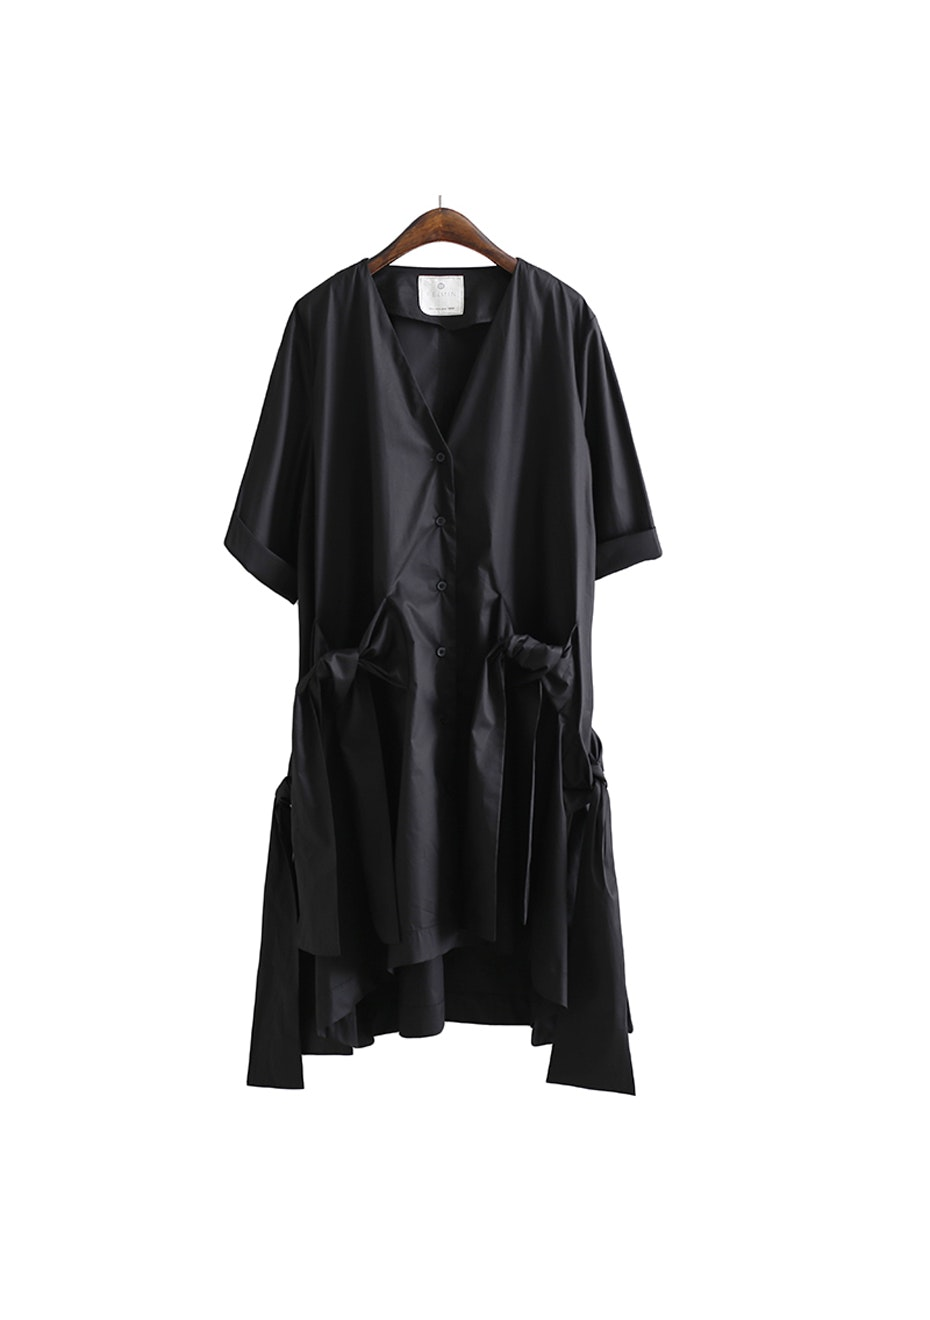 Gurlian Tie Dress - Black